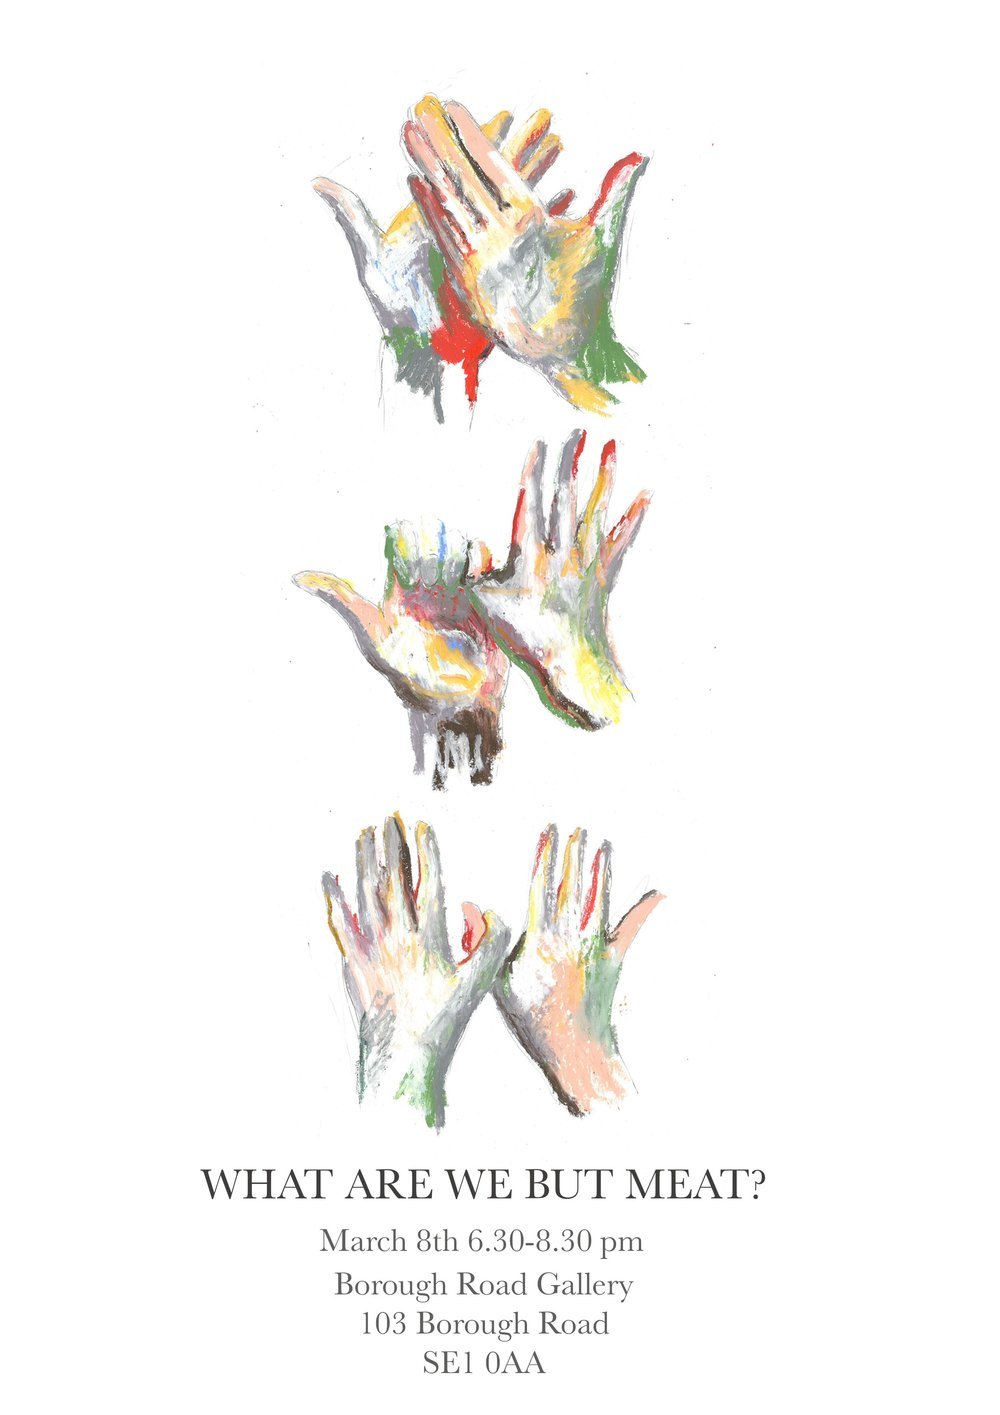 What are we but meat